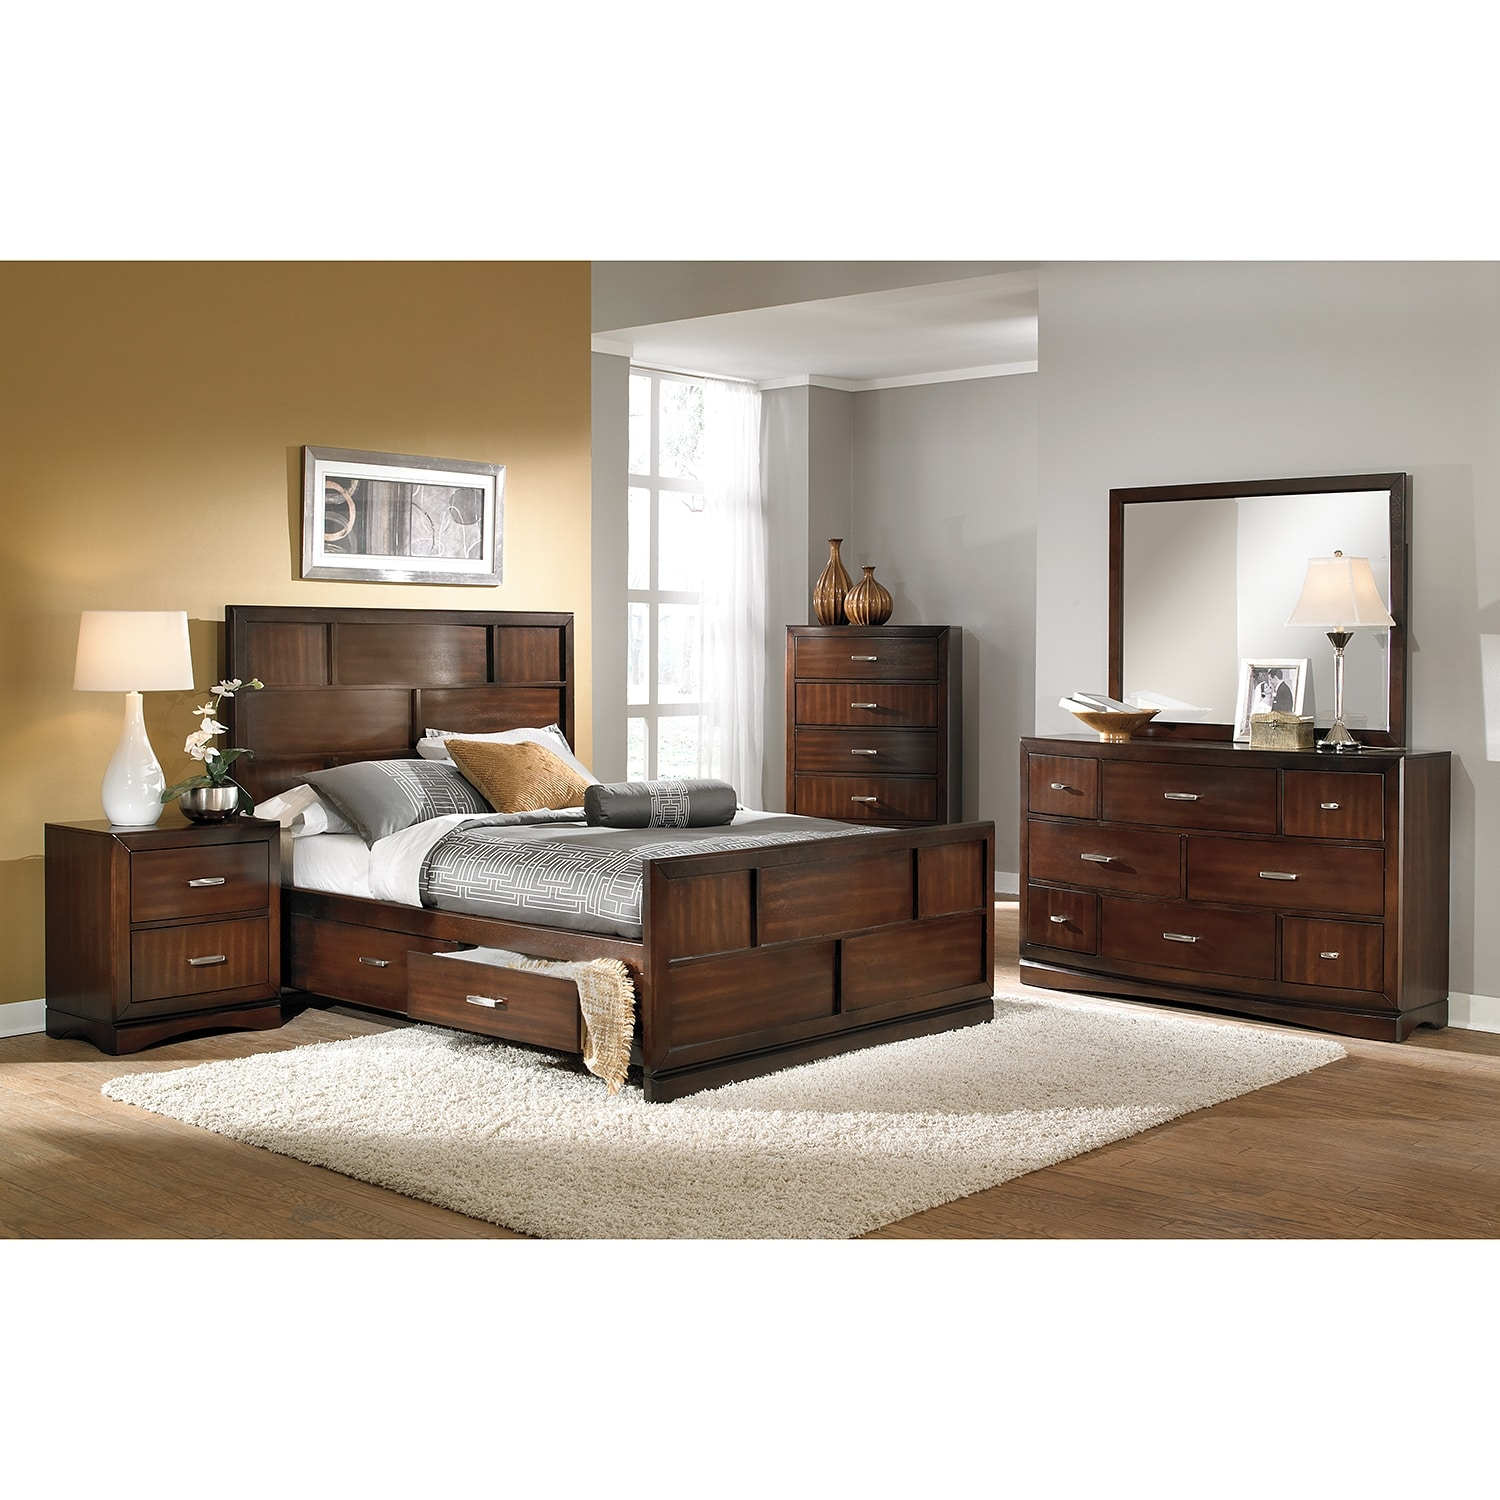 toronto king storage bed value city furniture. Black Bedroom Furniture Sets. Home Design Ideas